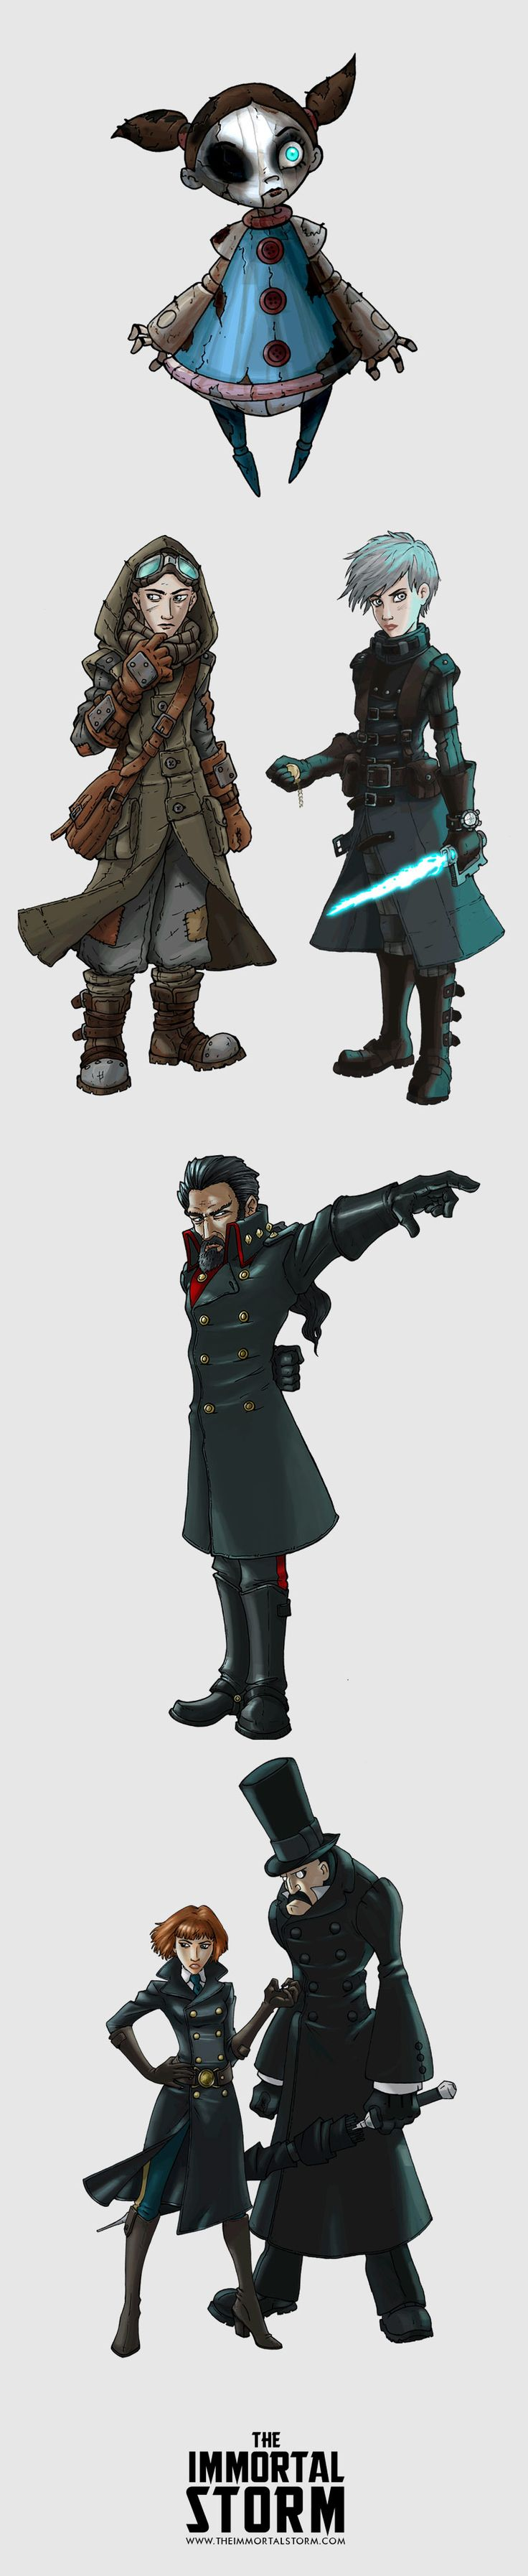 Character concept illustrations from The Immortal Storm by S.D. Wilkes.  Left to right: Ember, Kite Nayward, Fleer Nightborn, Shelvocke, the Corrector and the Umbrella Man.